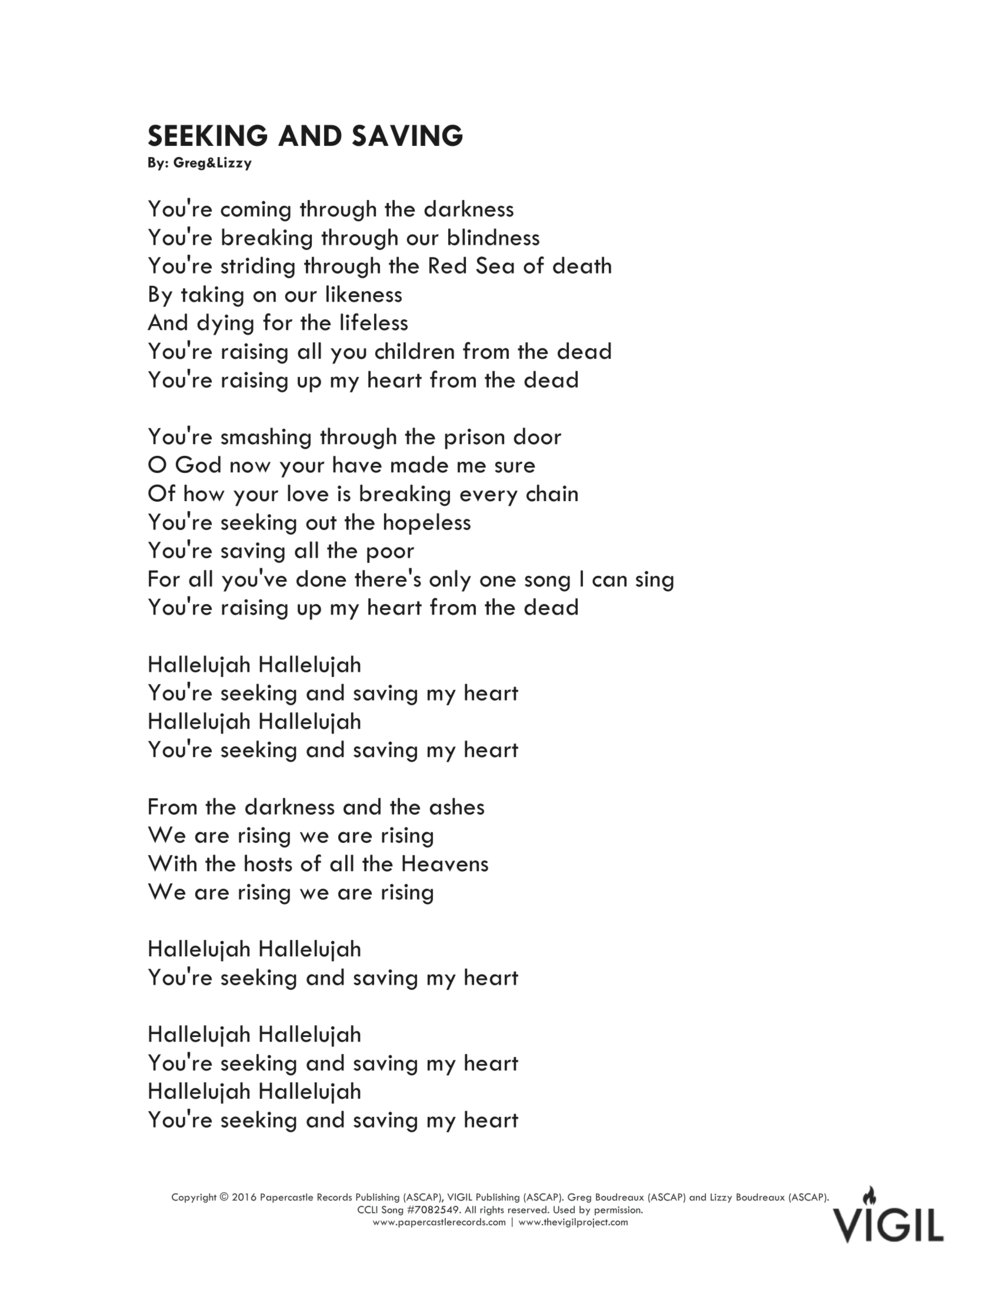 VIGIL S1 - Seeking And Saving (Lyrics)-1.png